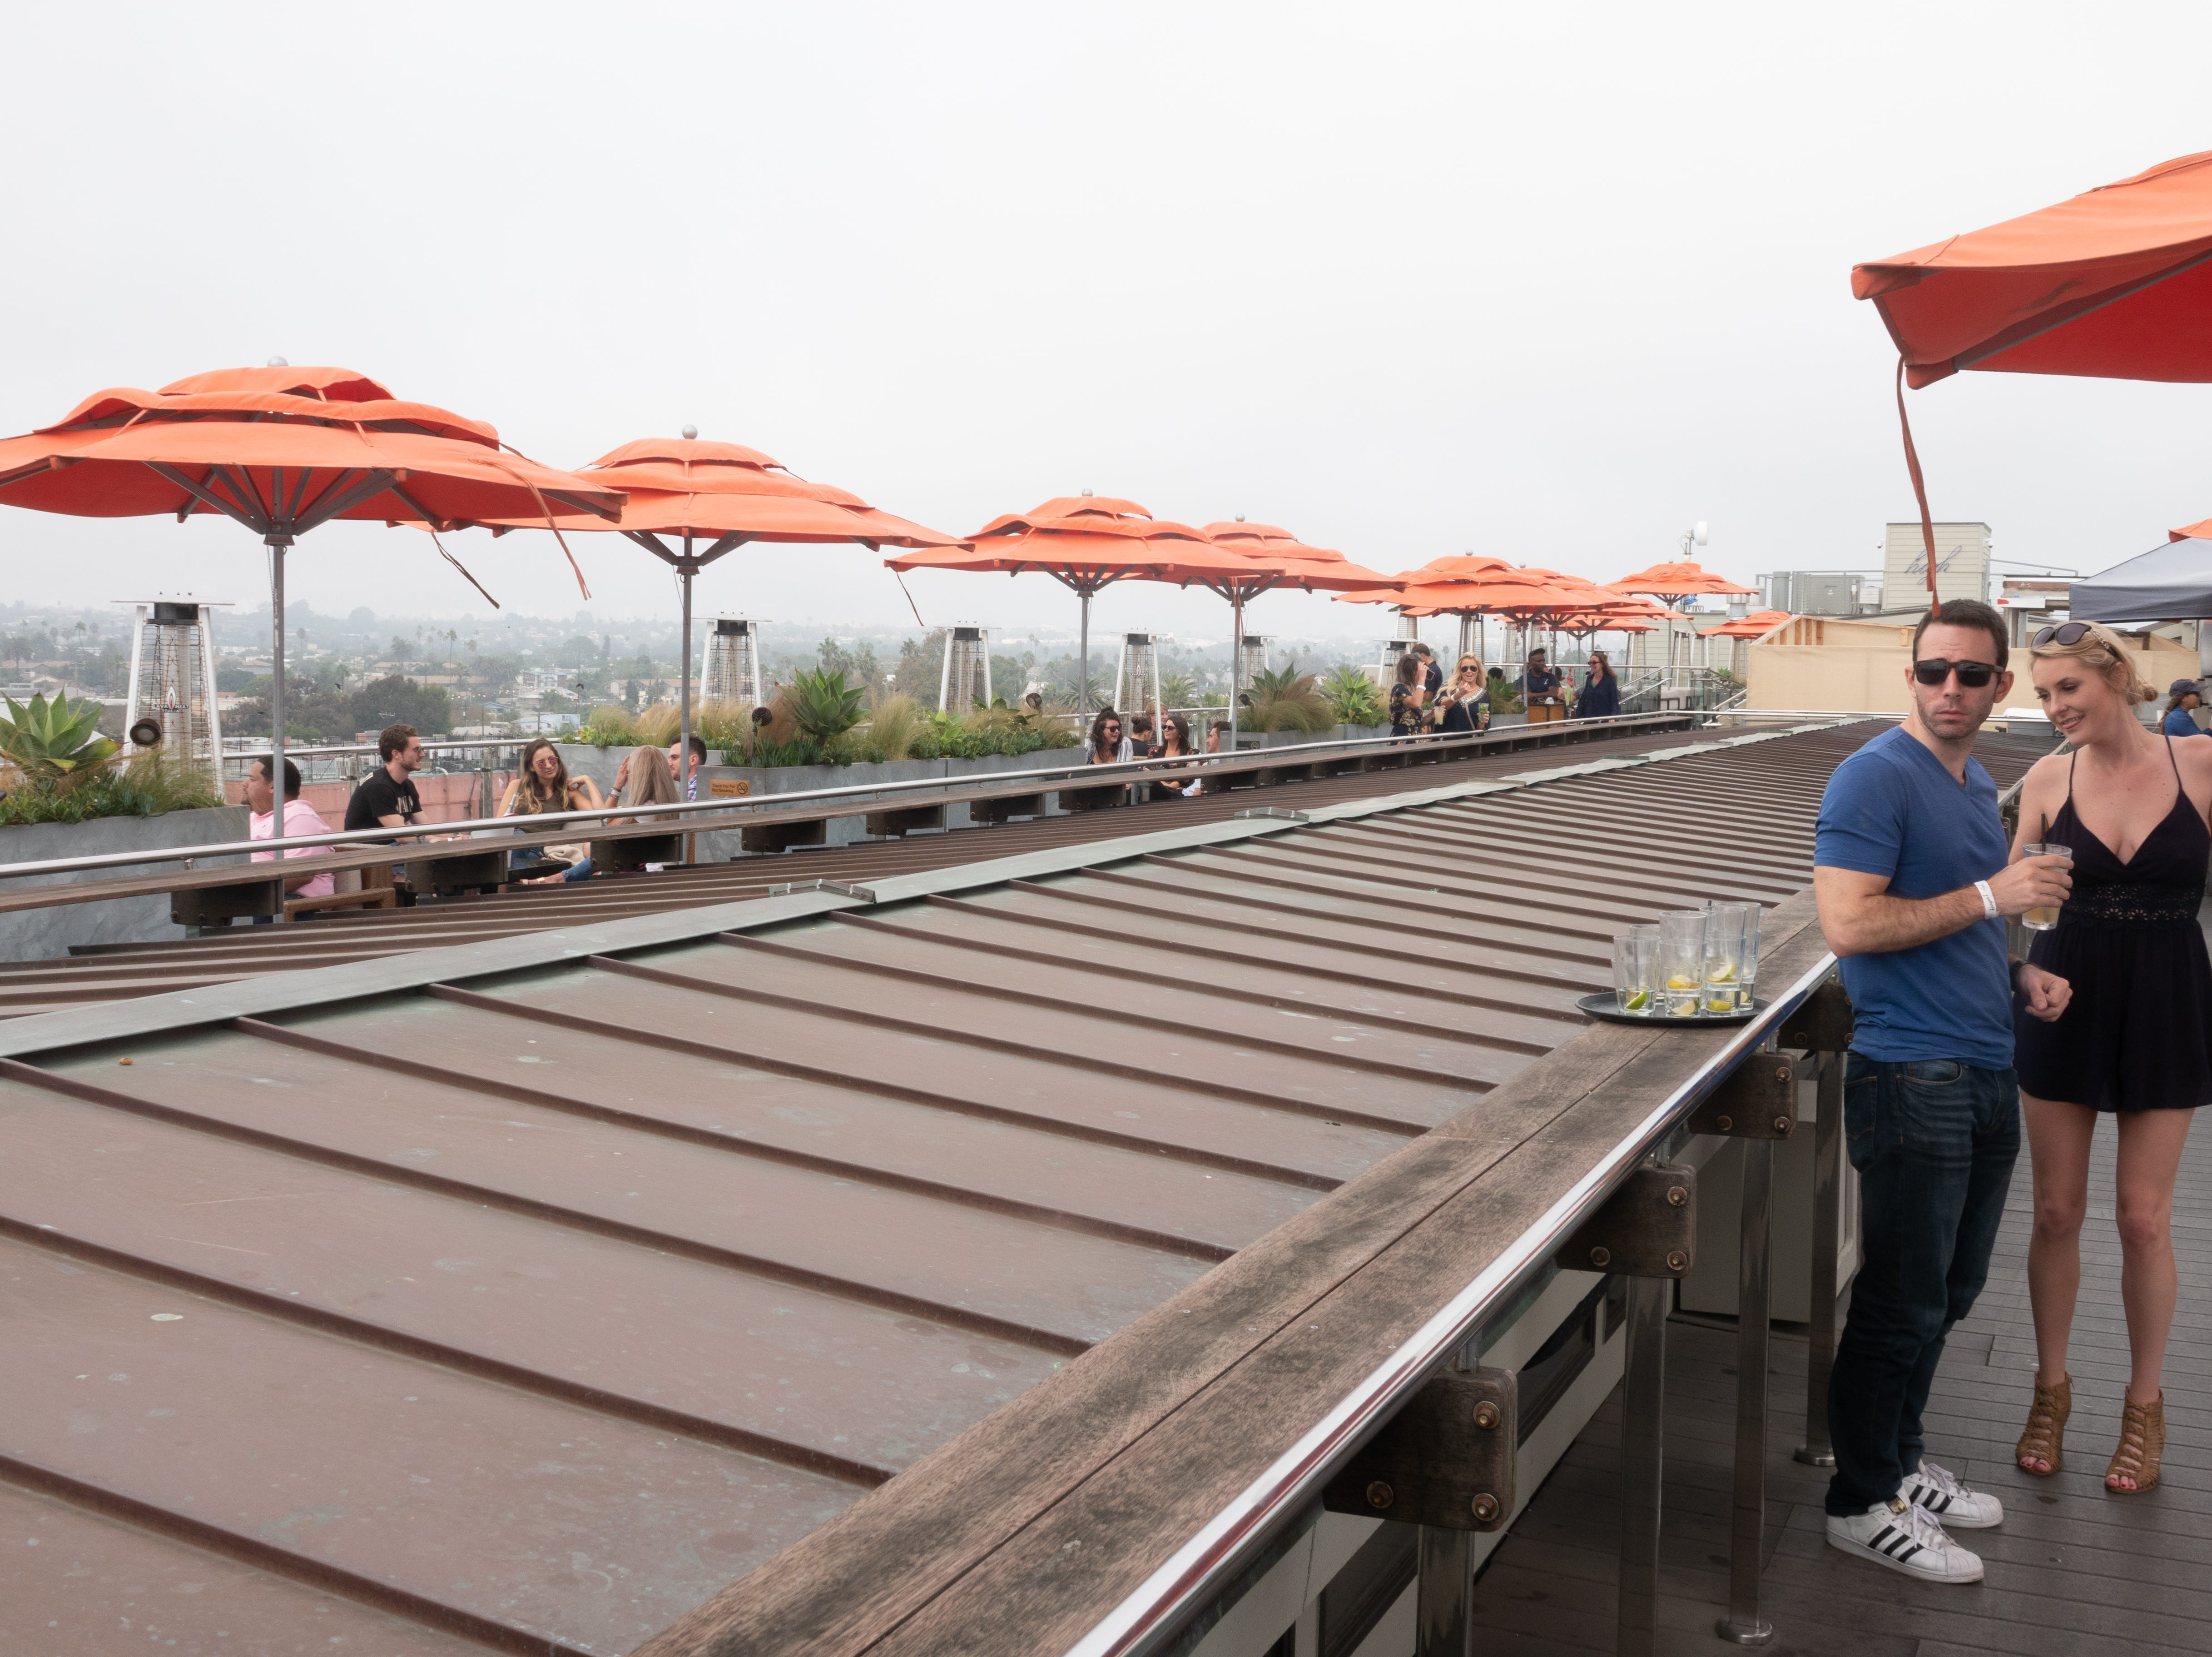 The Erwin Hotel has a rooftop bar for food, drink and views.